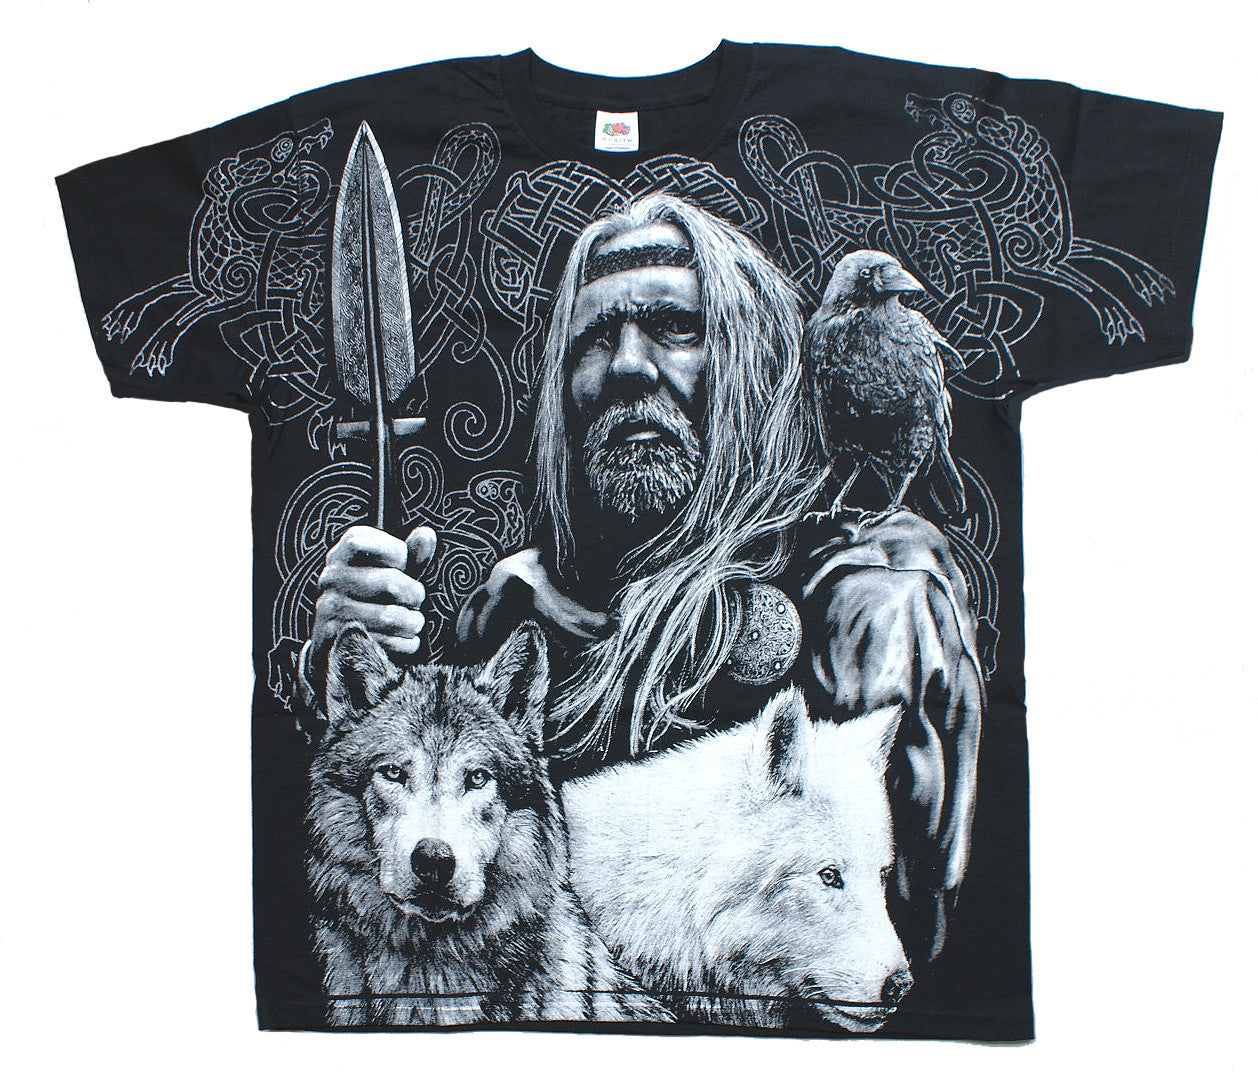 Aquila ODIN VIKING WARRIOR T Shirt Wrap Black